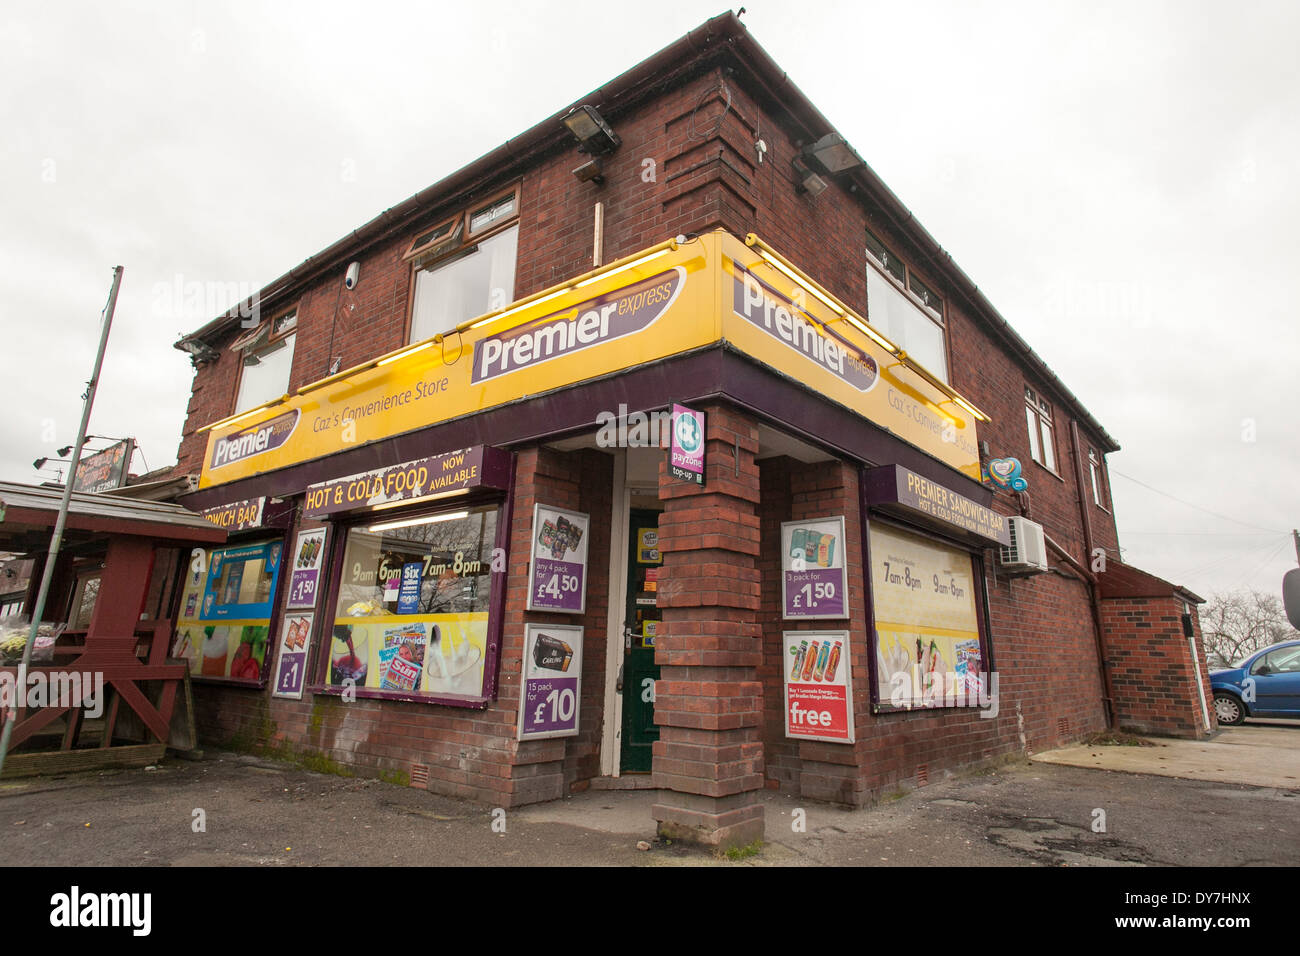 Premier convenience store in Leigh - Stock Image